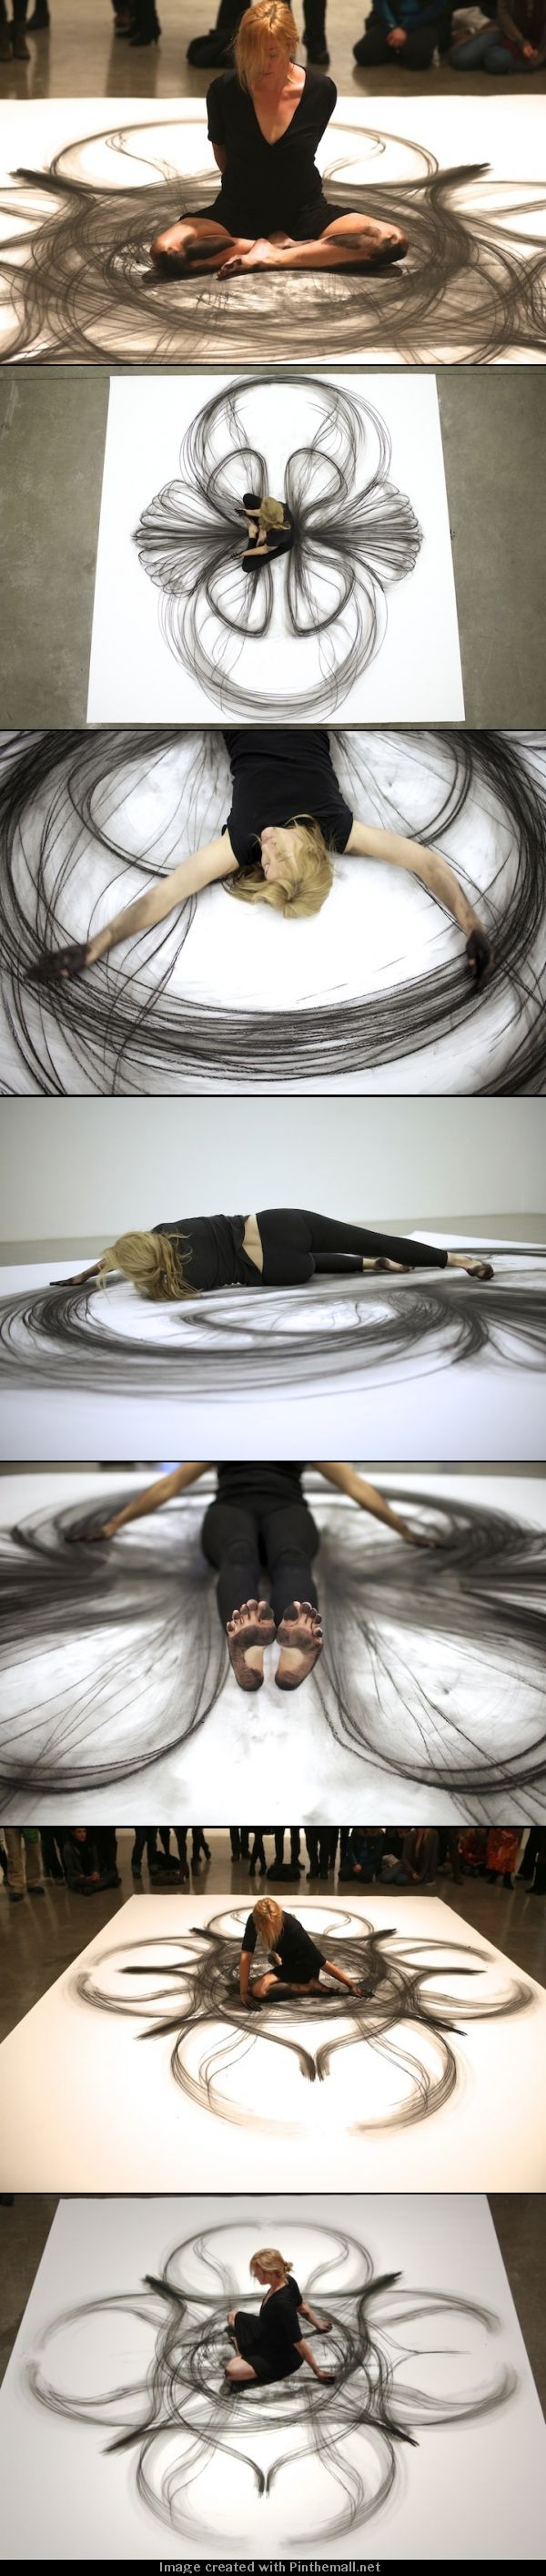 Emptied Gestures: Physical Movement Translated into Symmetrical Charcoal Drawings by Heather Hansen performance